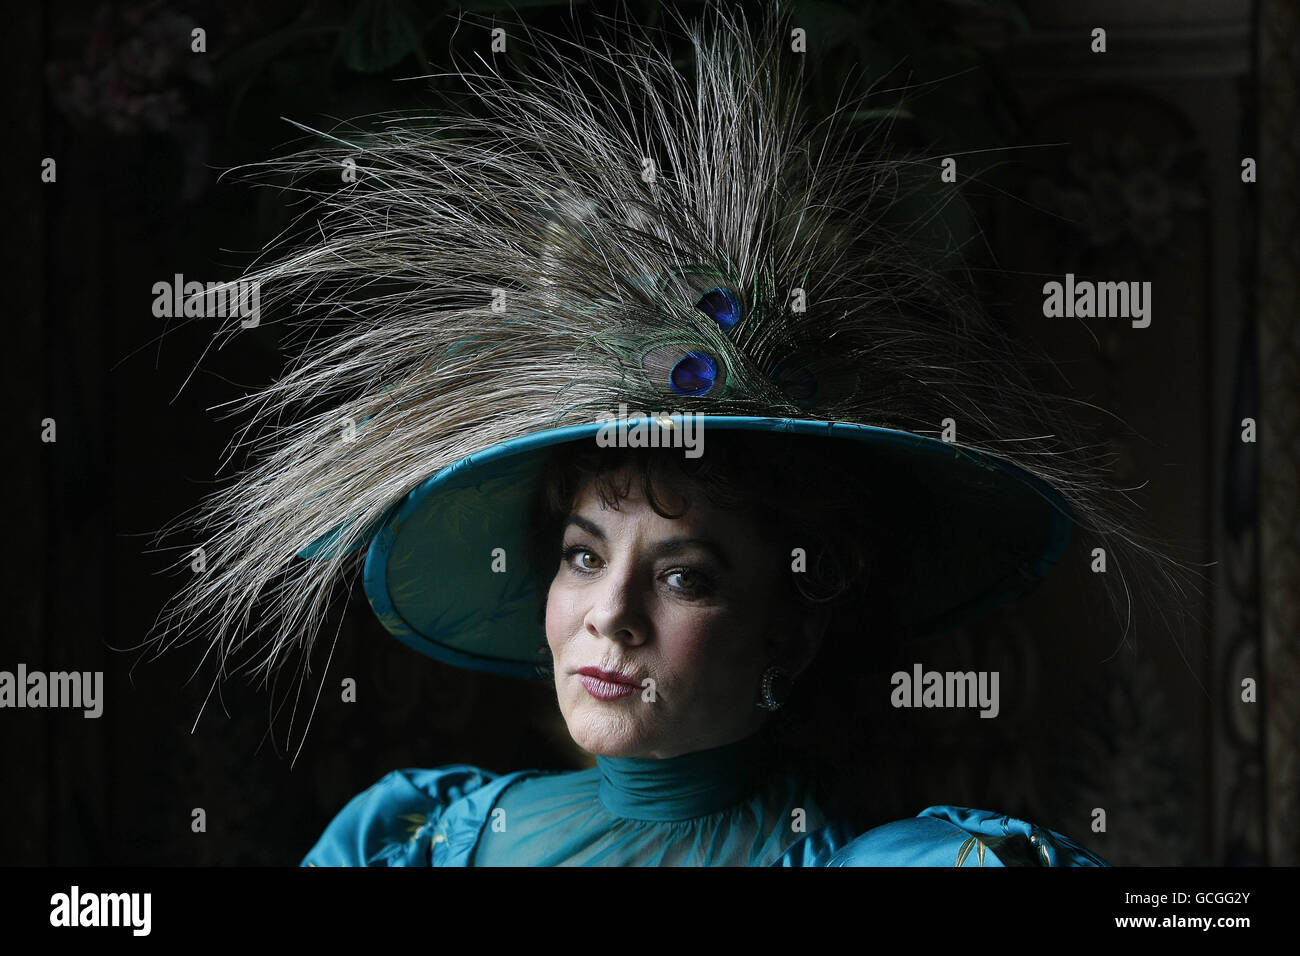 Stockard Channing to play Lady Bracknell - Stock Image